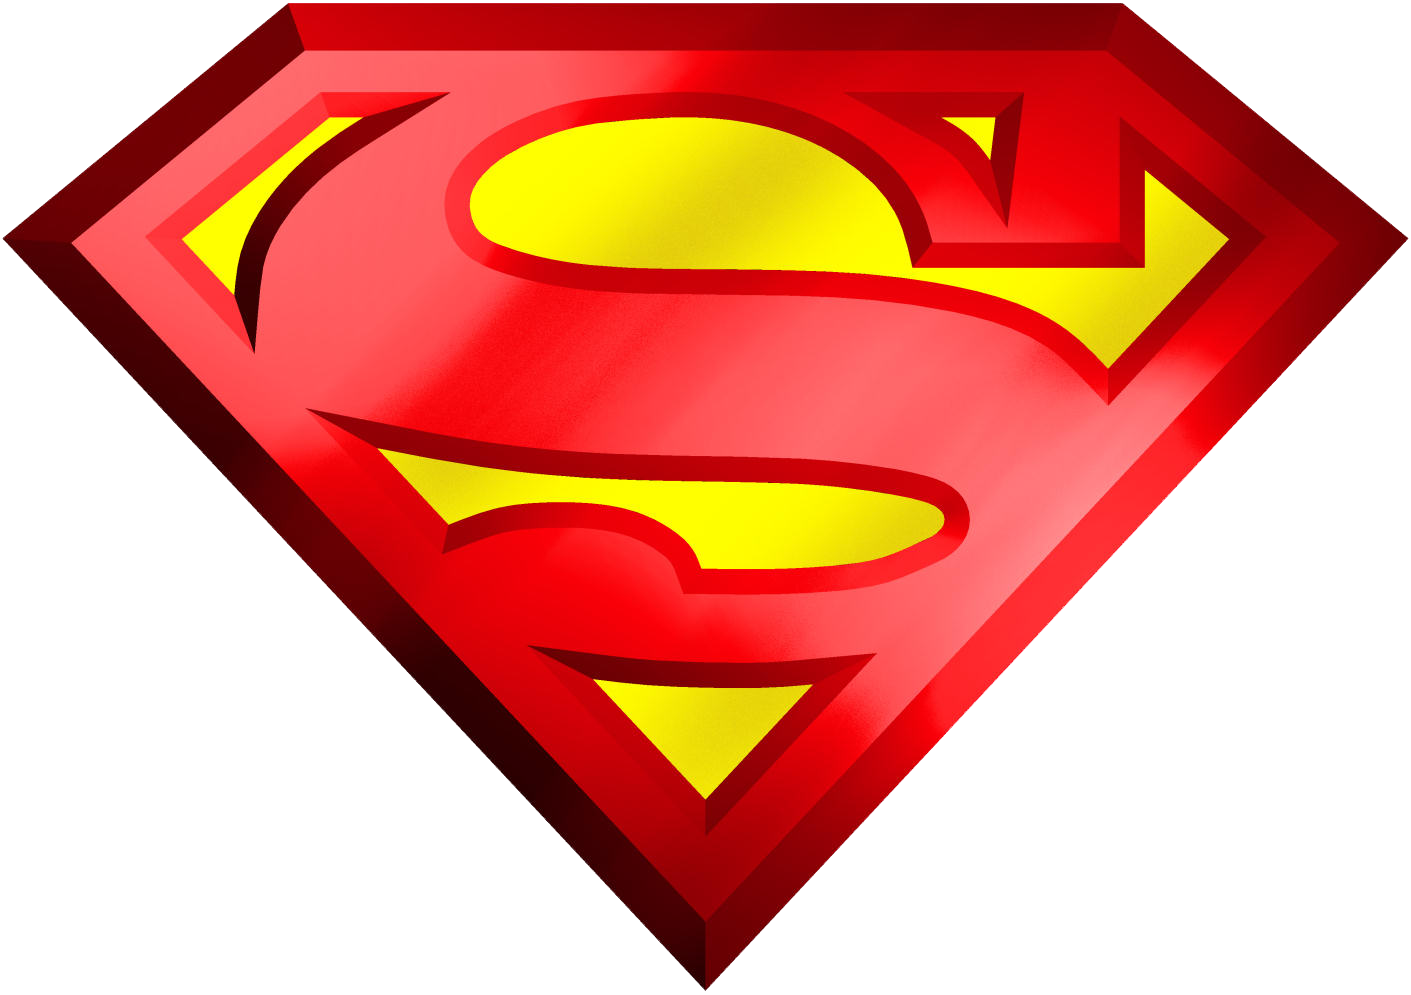 Super man clipart transparent image freeuse stock Superman PNG Images Transparent Free Download | PNGMart.com image freeuse stock